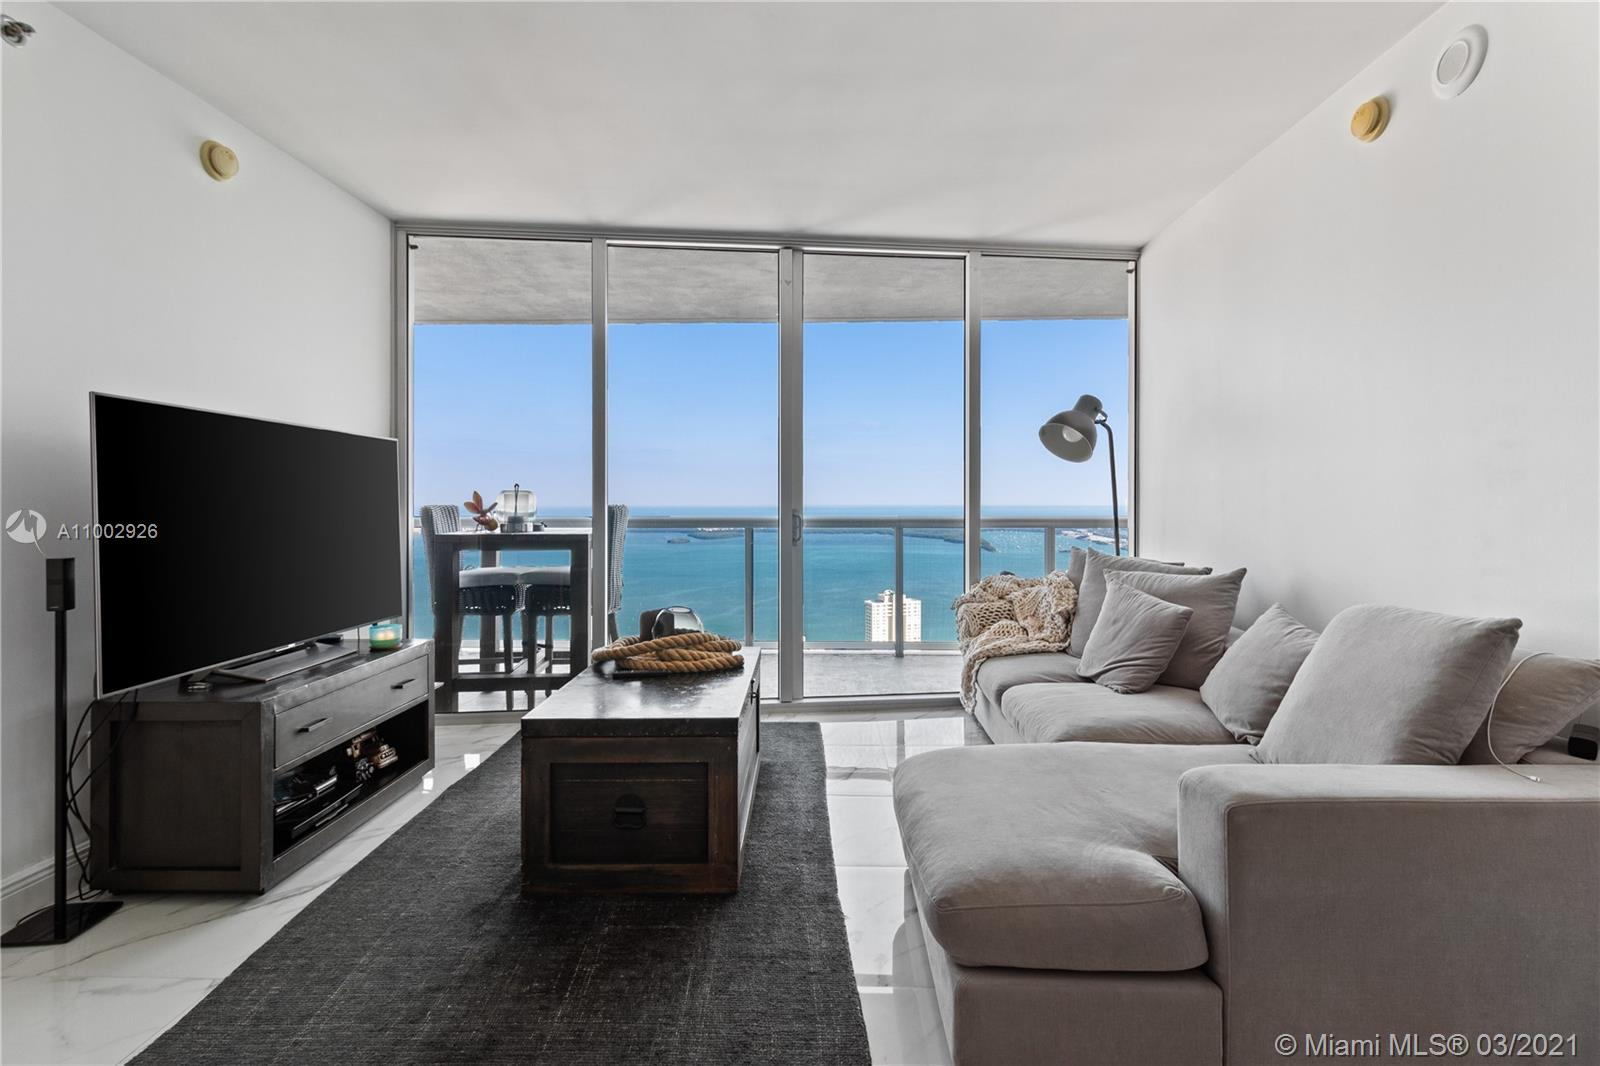 TENANT OCCUPIED TILL JULY 31ST. Breathtaking views of the bay and the ocean from this 2/2 +den on the 55th floor. Marble tiles throughout the unit. Italian kitchen cabinetry and Subzero fridge. Enjoy the pleasure of living in your own secluded condo while being in the epicentre of vibrant Brickell. The Icon Brickell has the best amenities including a world class Spa, a state of the art fitness center and the biggest pool in Florida. Walking distance to Brickell City Center